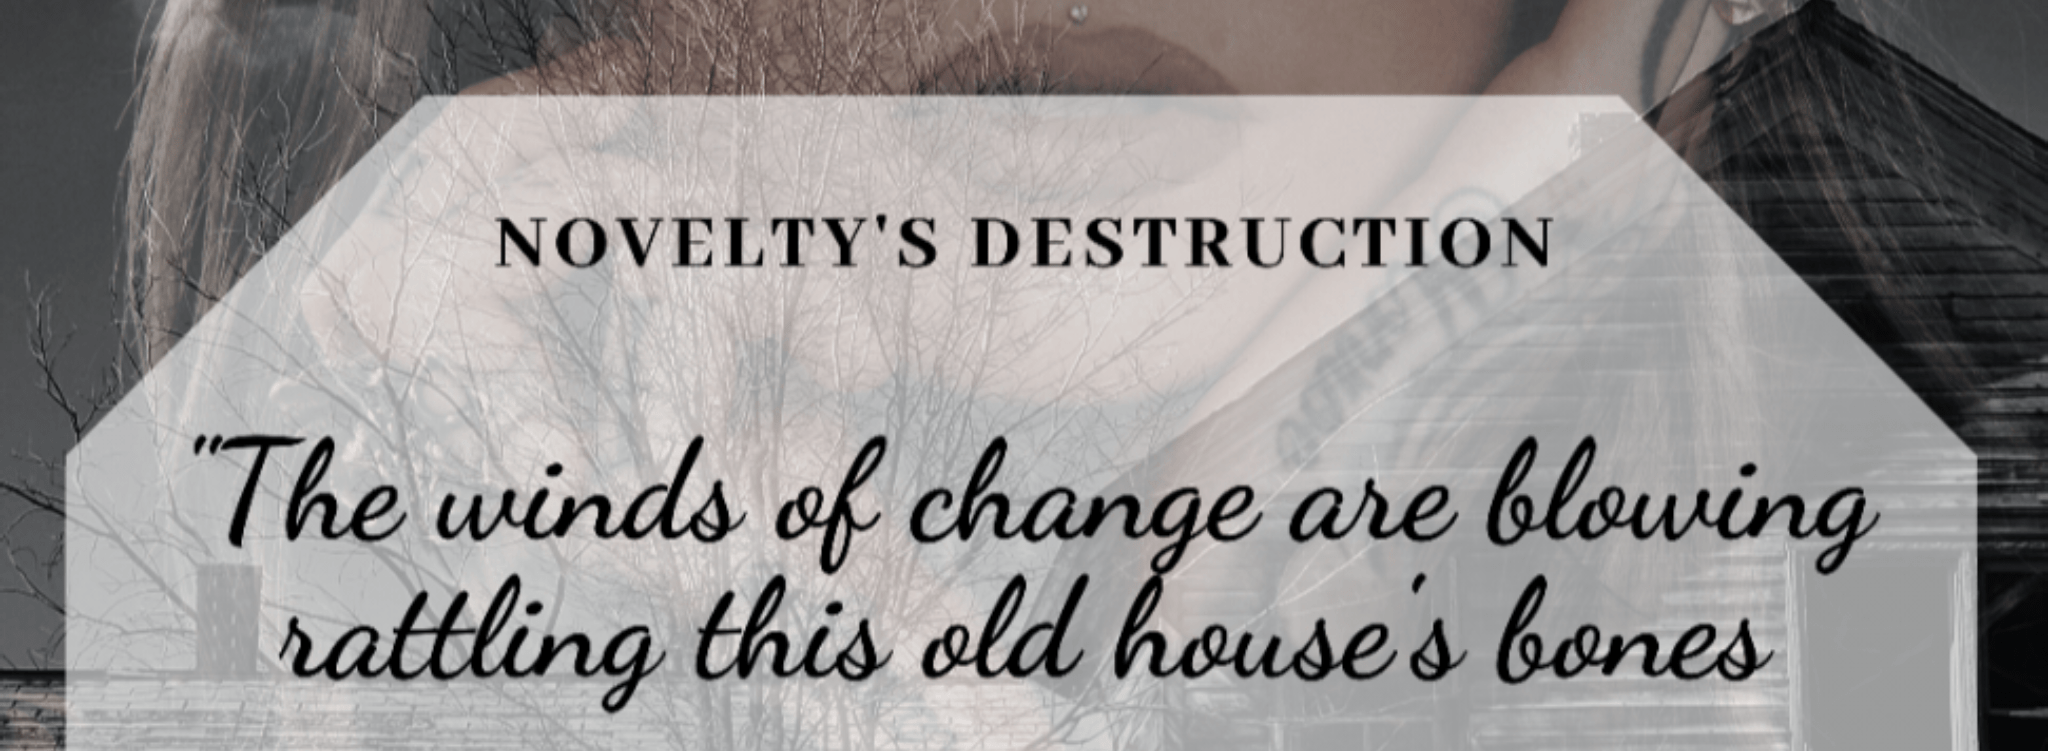 Novelty's Destruction